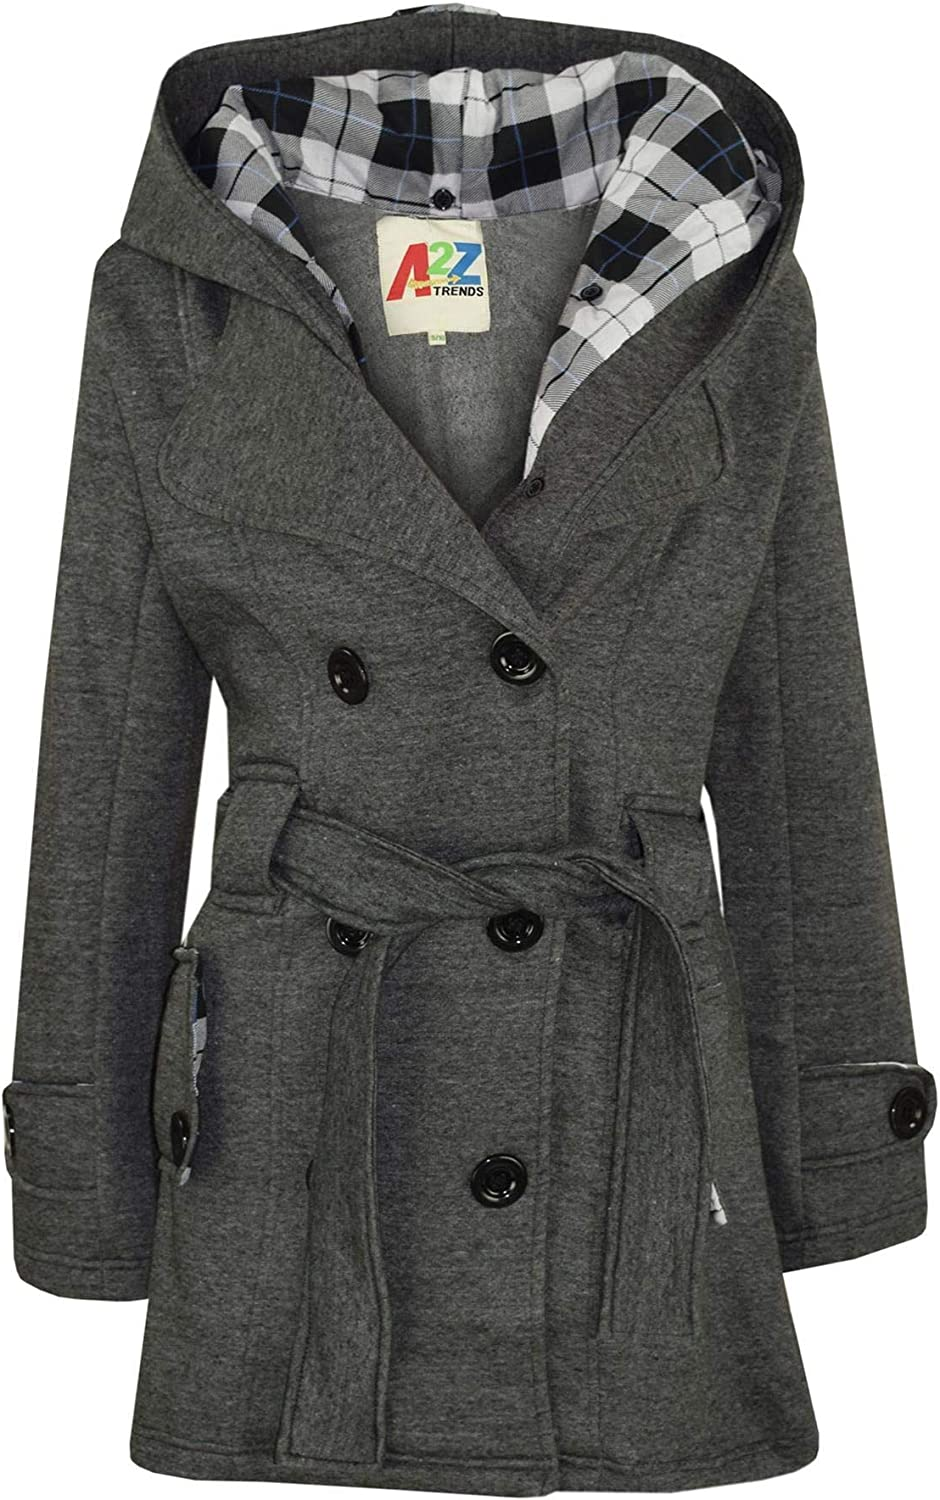 Max 40% OFF Kids quality assurance Girls Overcoat Hooded Trench Oversized Coat Lapels L Padded